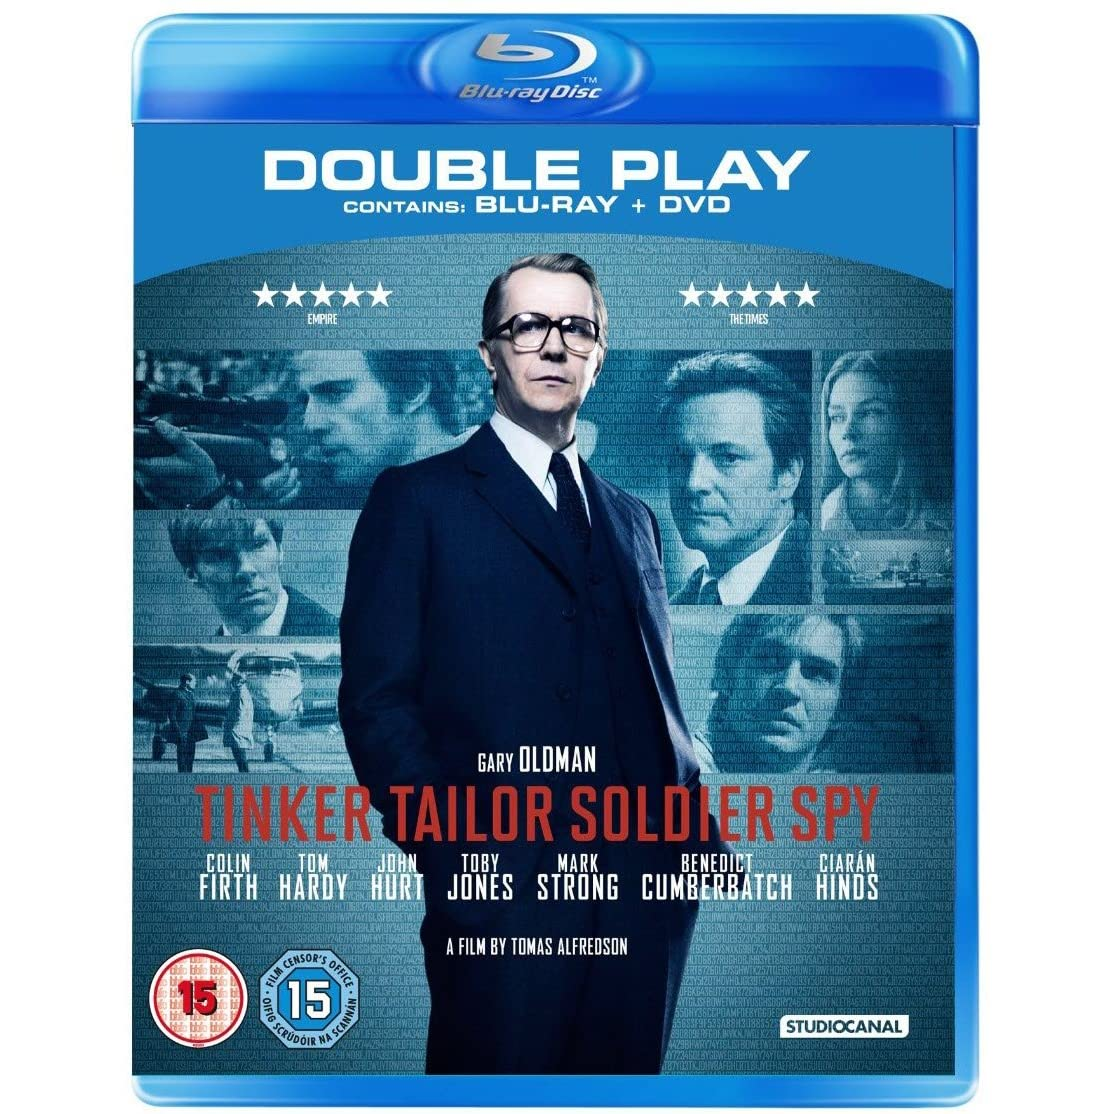 Tinker Tailor Soldier Spy 2011 [Vostfr] [BluRay 1080p] [UL]